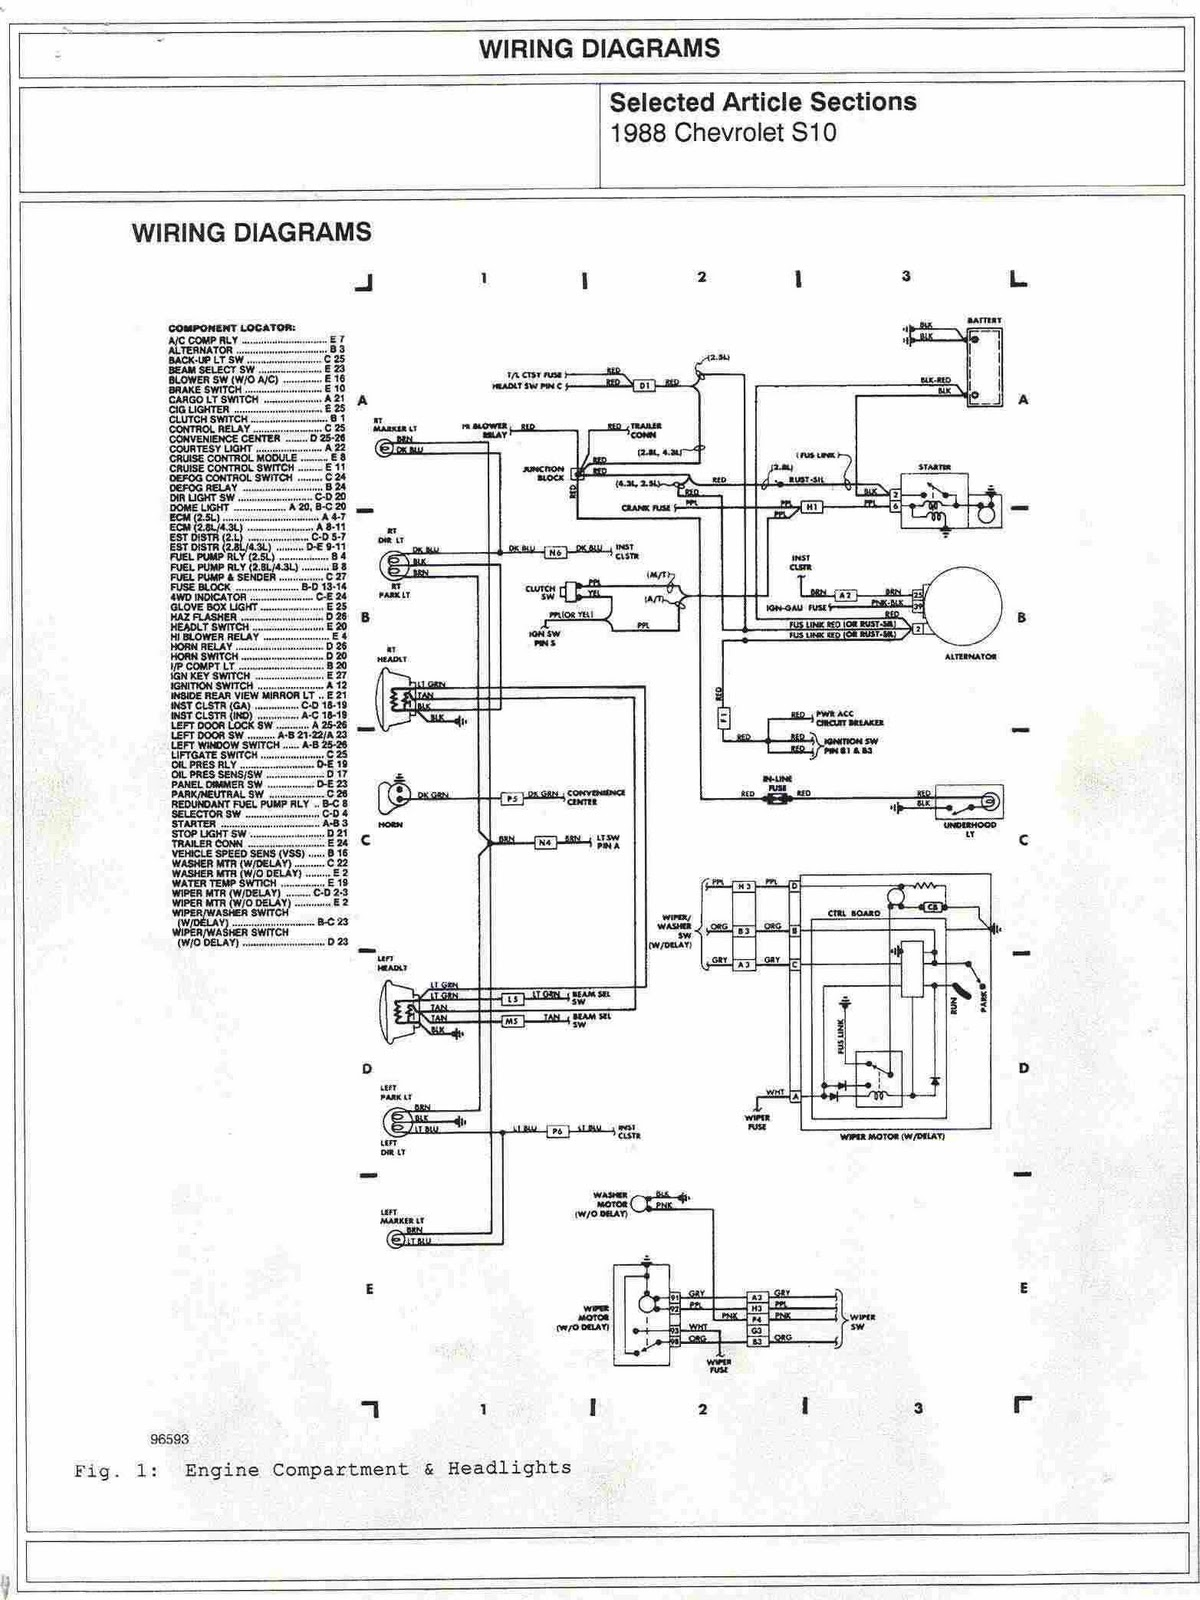 97 S10 Headlight Wiring Diagram 31 Images 1997 Fuse Box 1988 Chevrolet Engine Compartment And Headlights